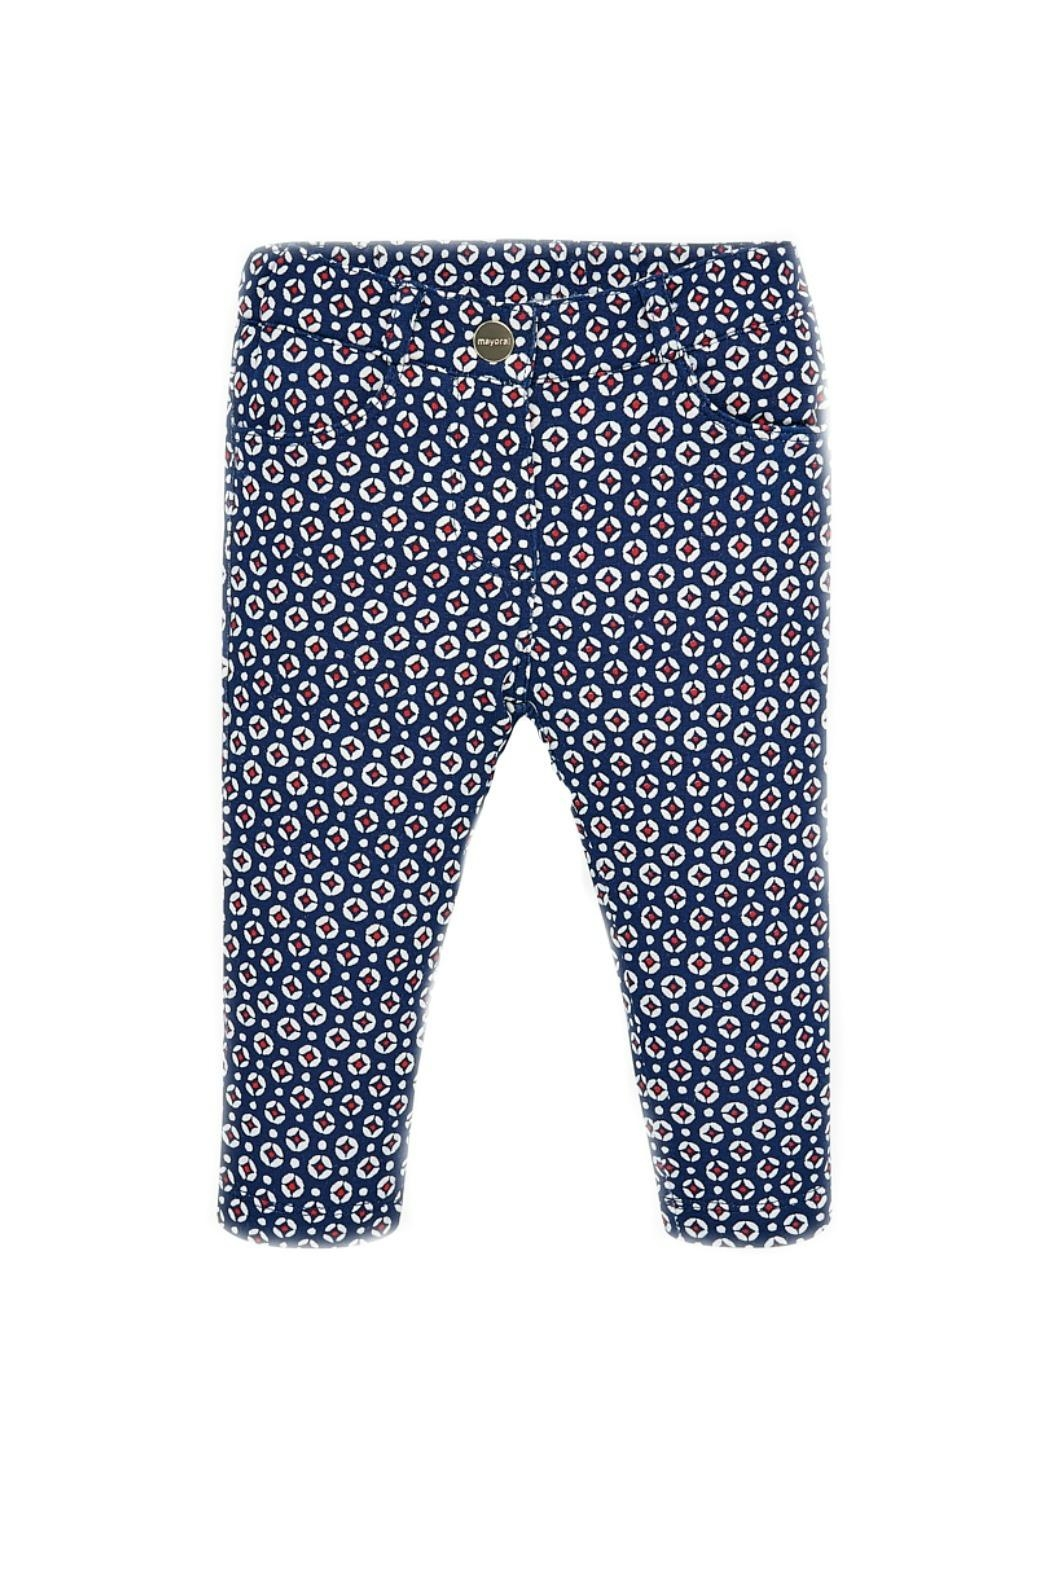 Mayoral Geo-Dot-Pattern Girls Trousers - Front Cropped Image